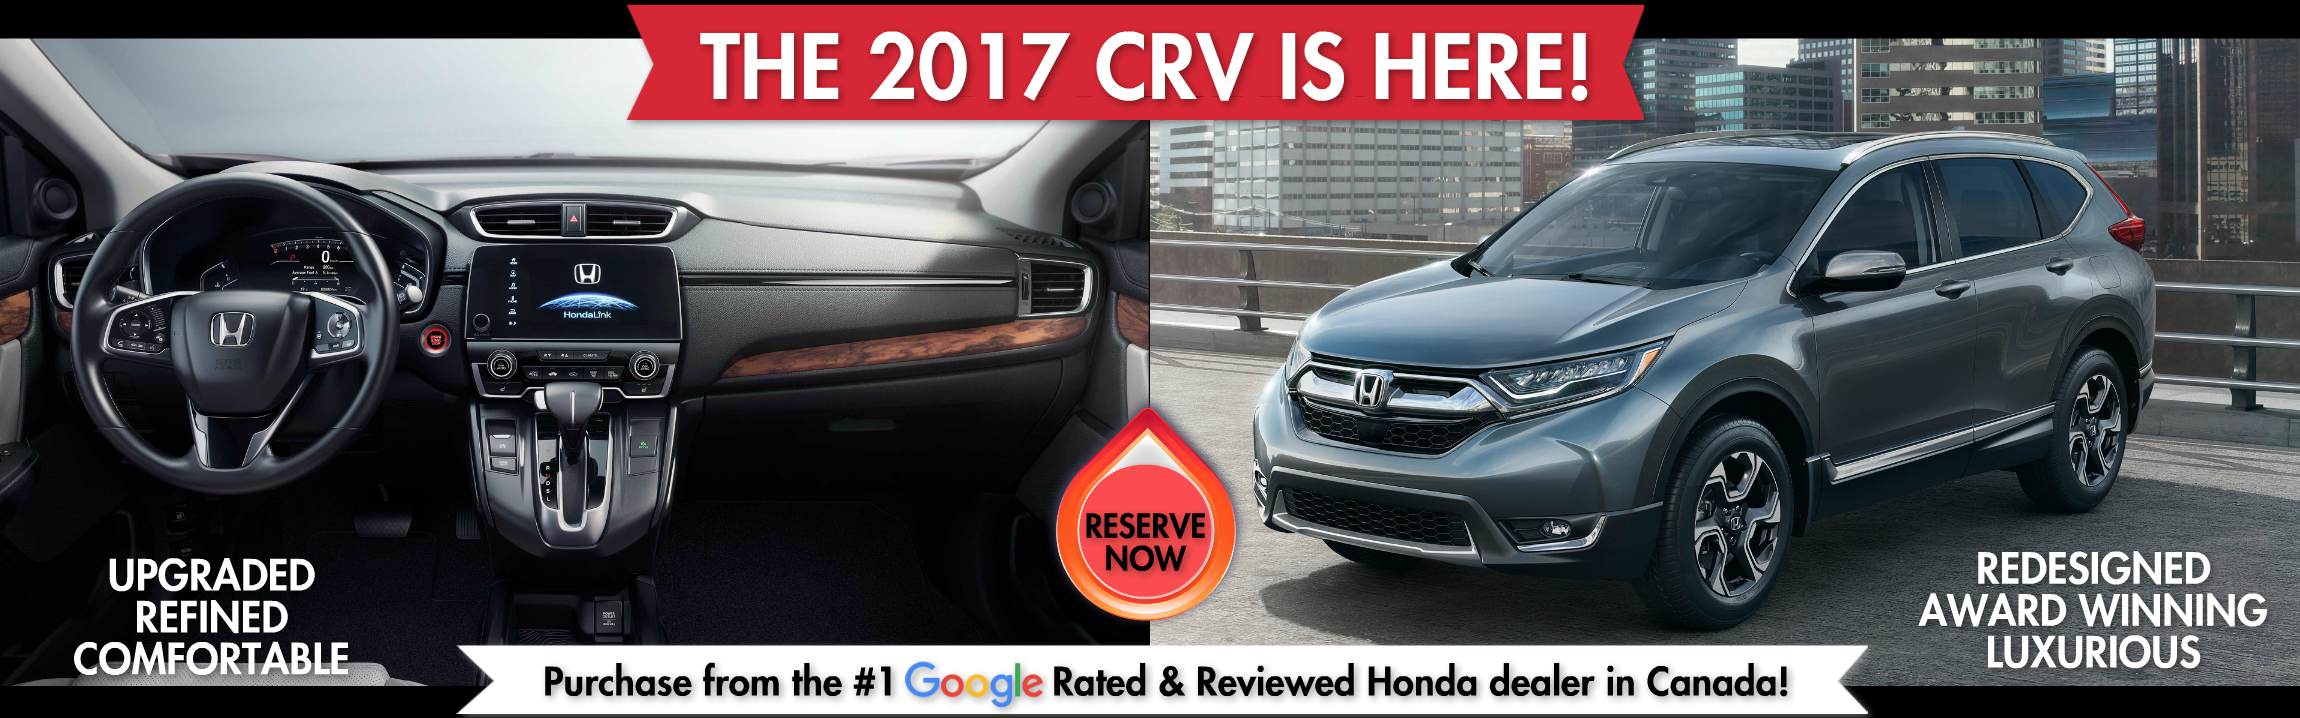 Order your 2017 Honda CRV from Okotoks Honda in South Calgary - Google's Highest Rated & Reviewed Honda dealership in Canada